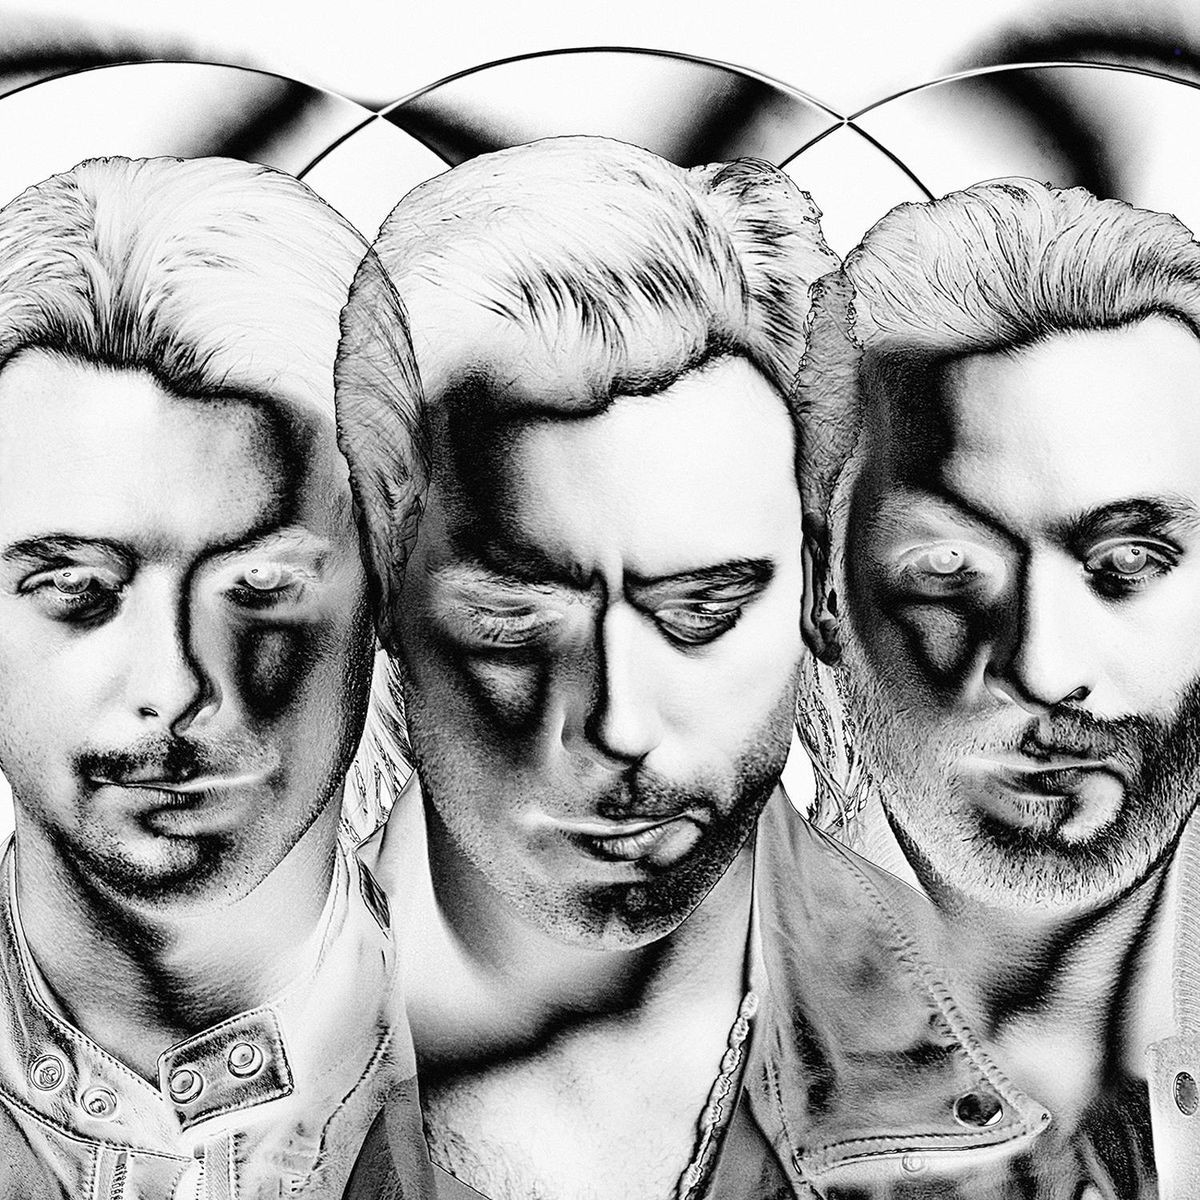 Swedish House Mafia - Until Now CD - CDEMCJ 6668